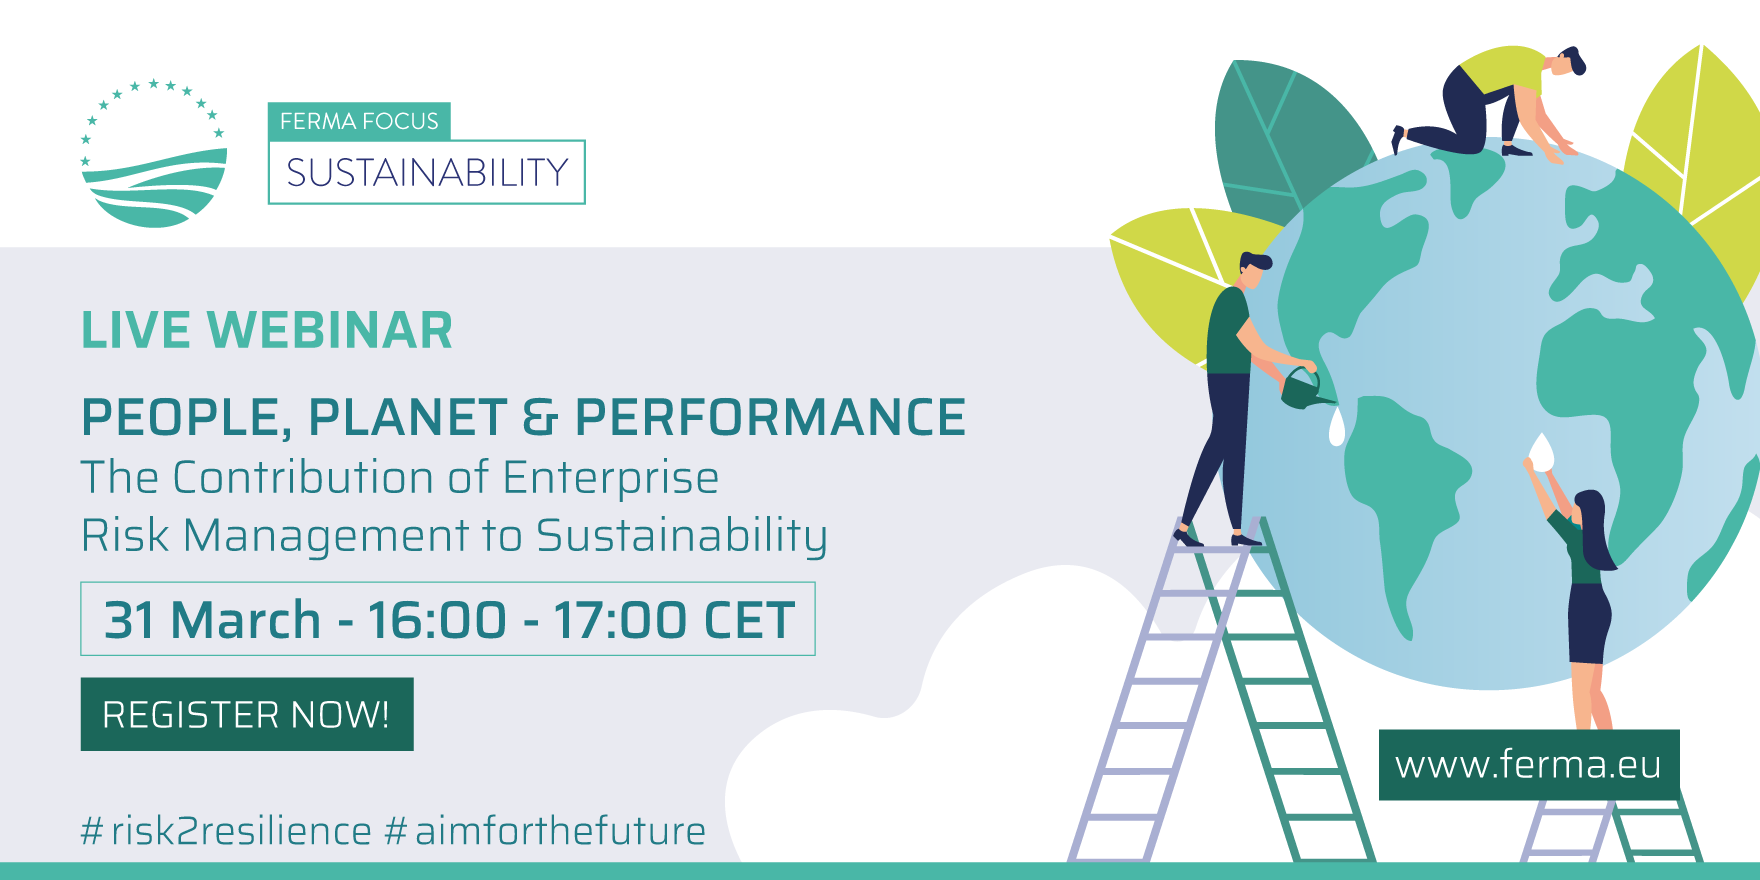 ferma sustainability guide webinar